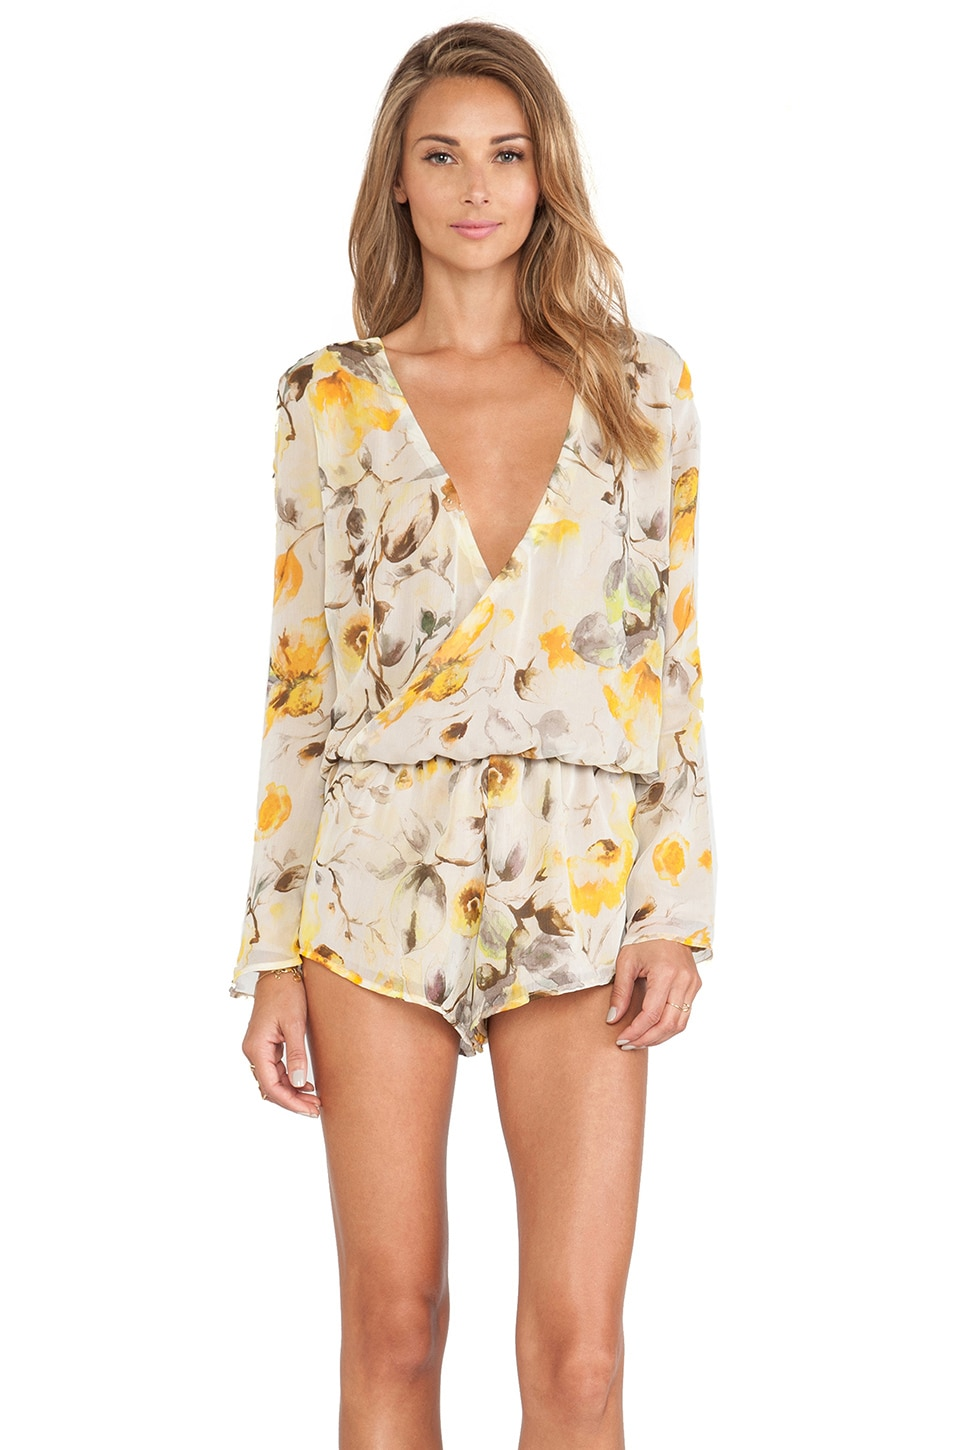 MERRITT CHARLES Kennedy Long Sleeve Romper in Yellow Floral Silk